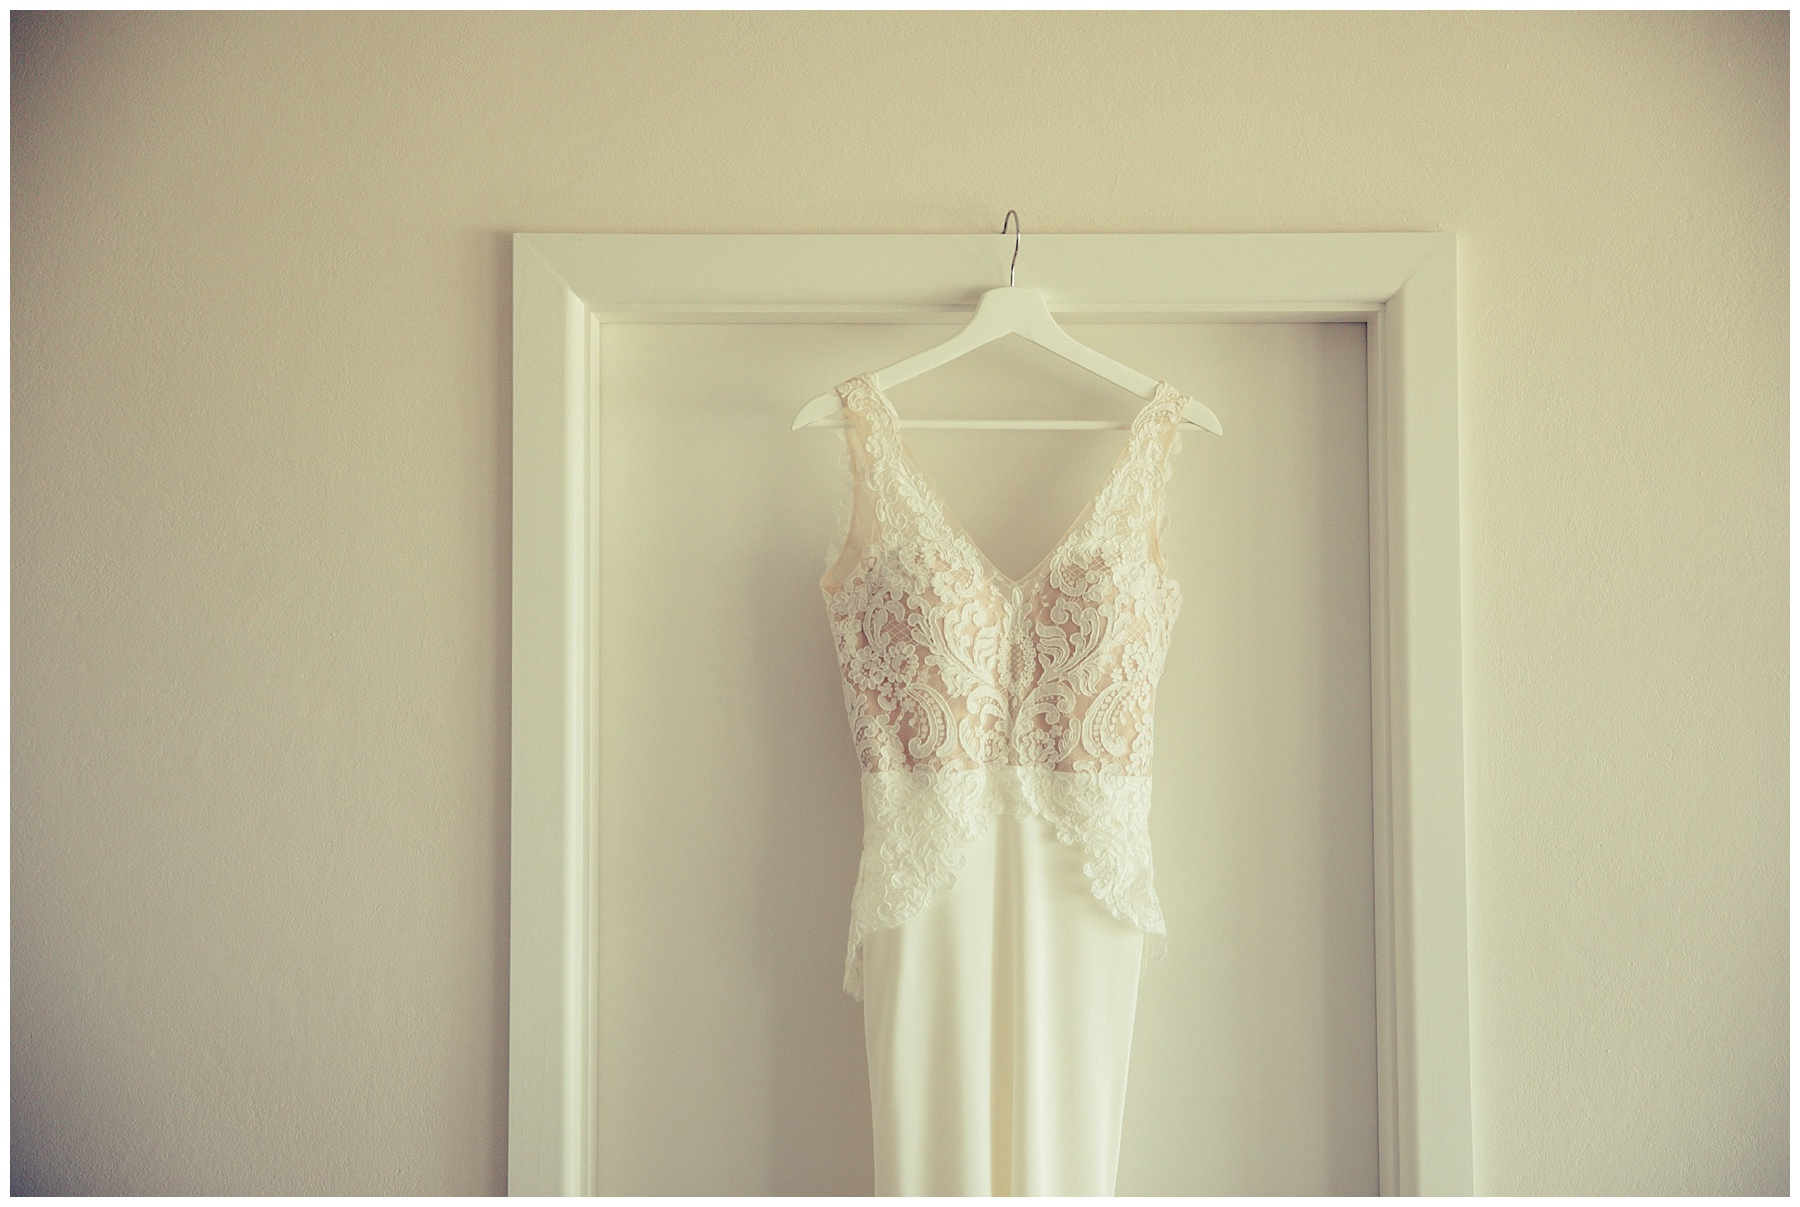 Helen English wedding dress hanging on door